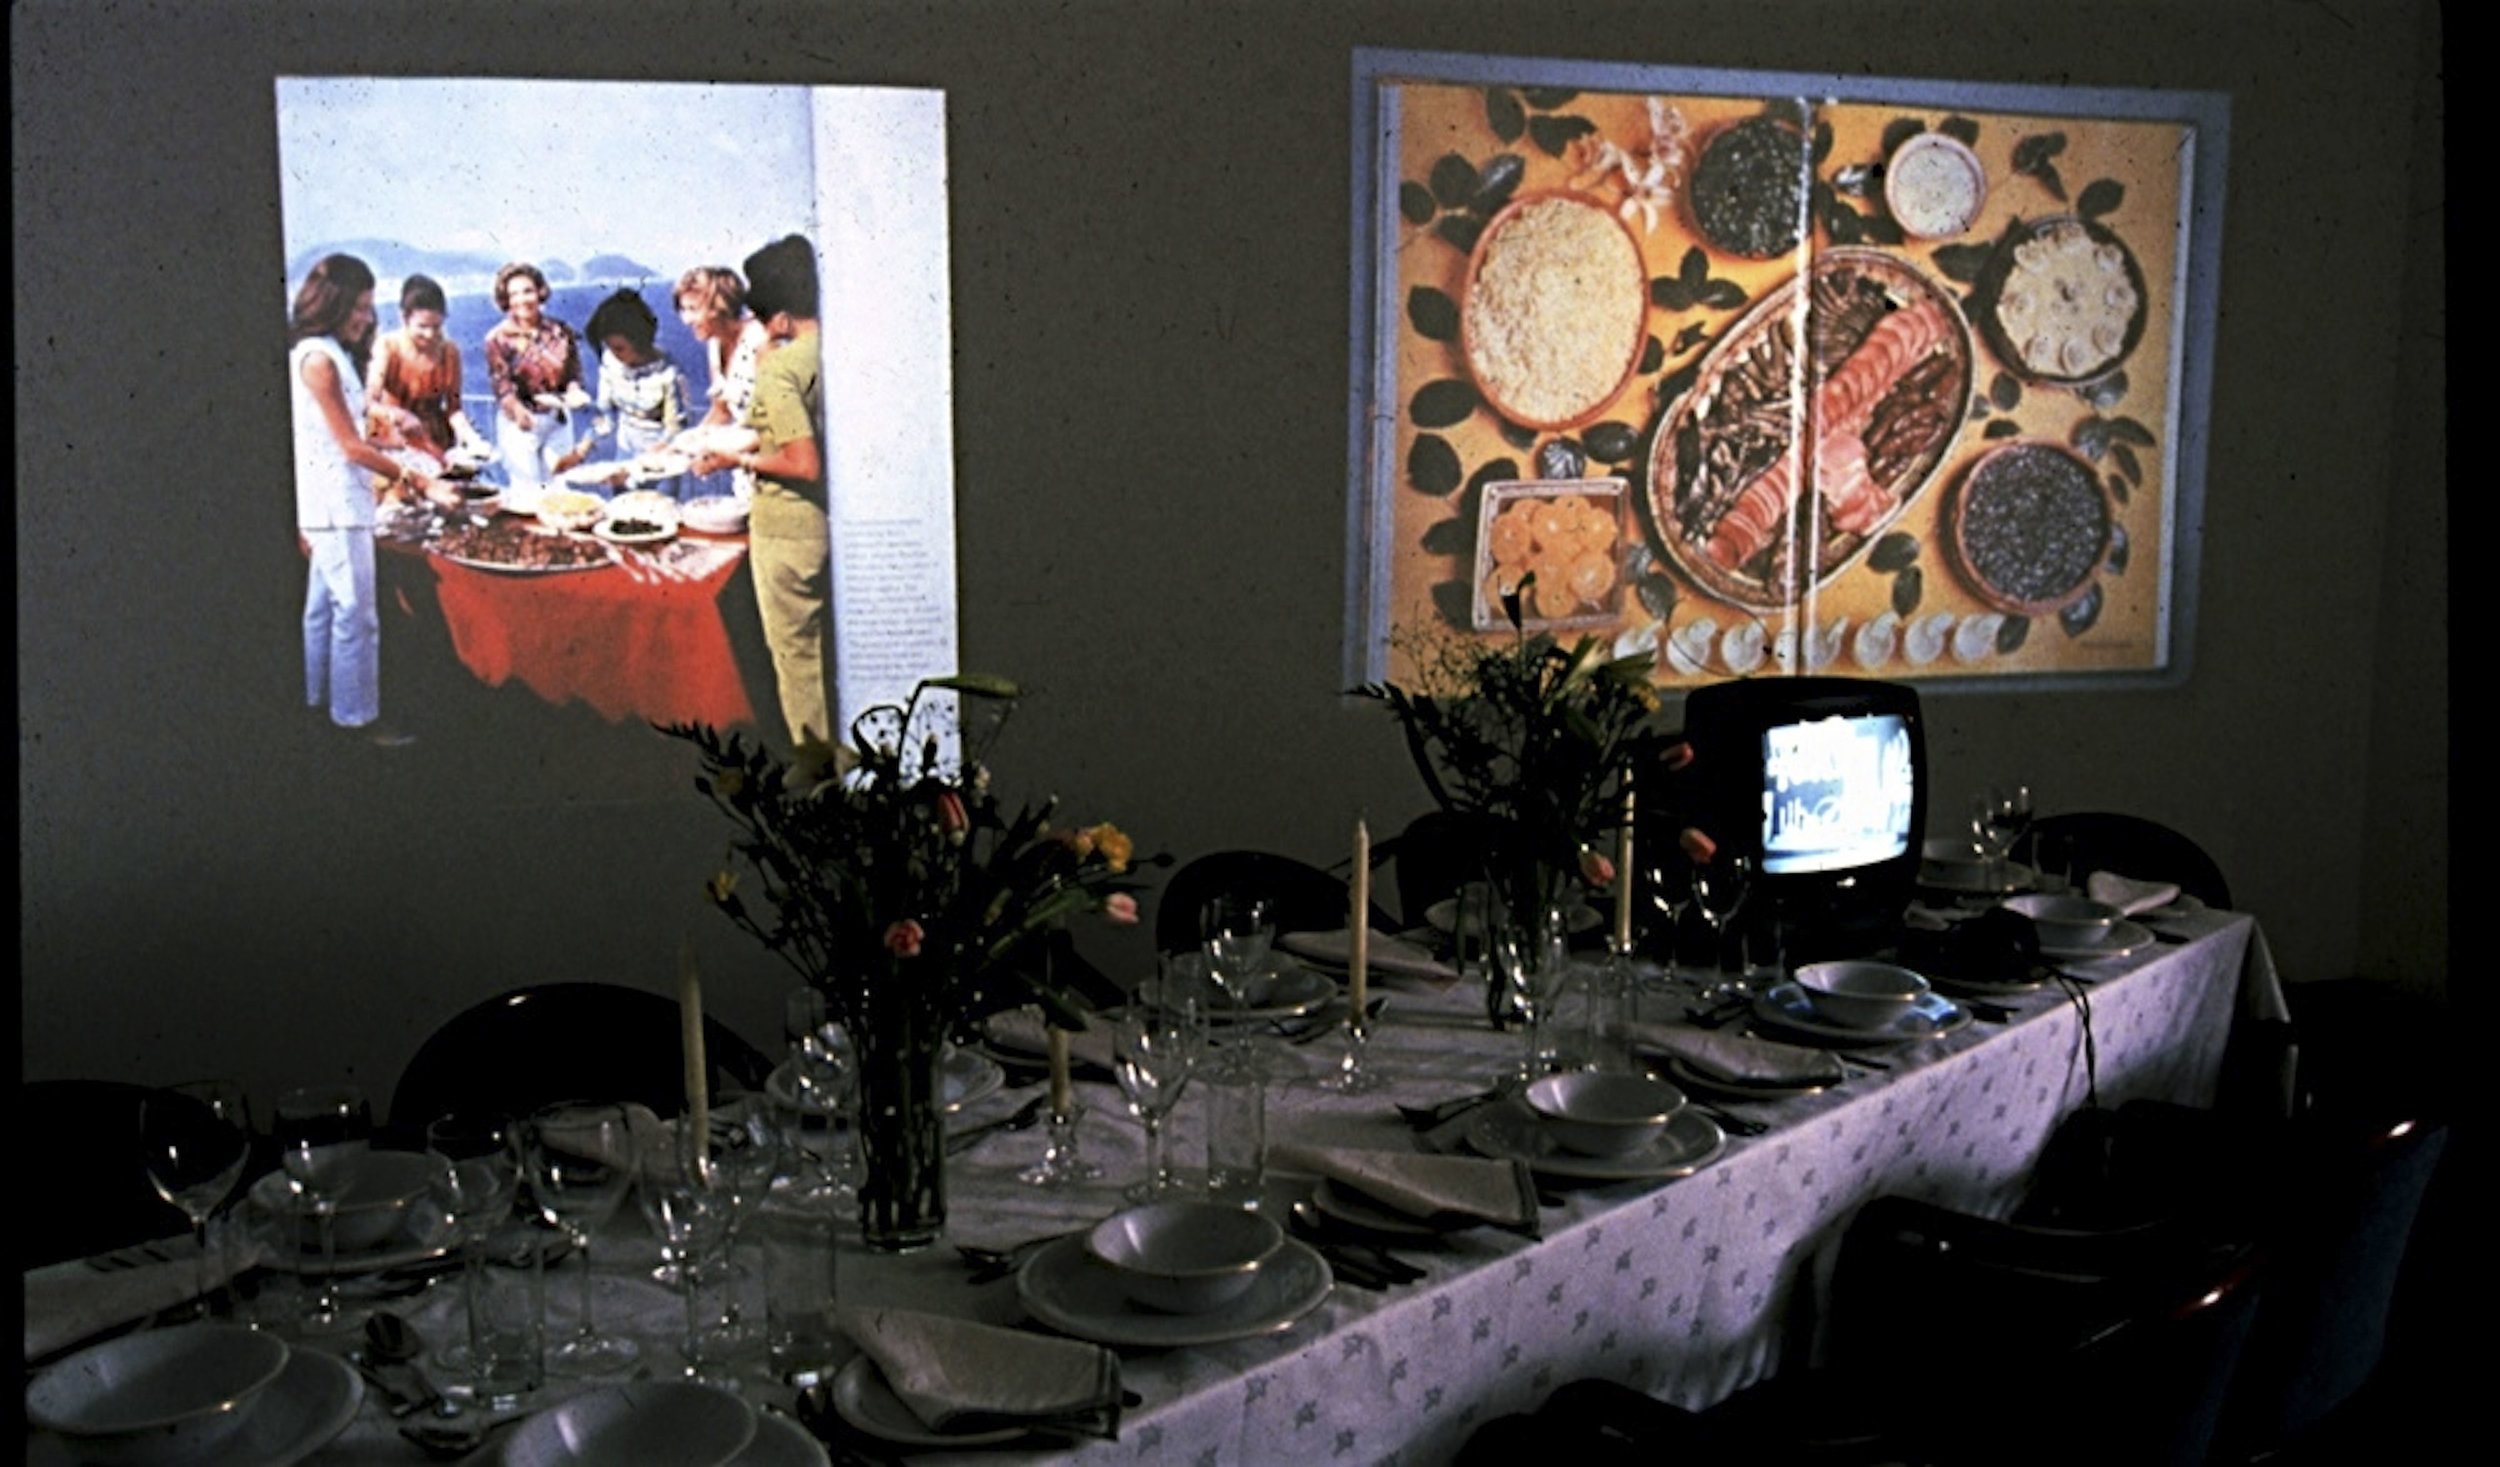 Martha Rosler, A Gourmet Experience, 1974, installation with banquet table, video, slide projections, audio, books, cookbook readings, and prints of the food novel A Budding gourmet. Artwork © Martha Rosler